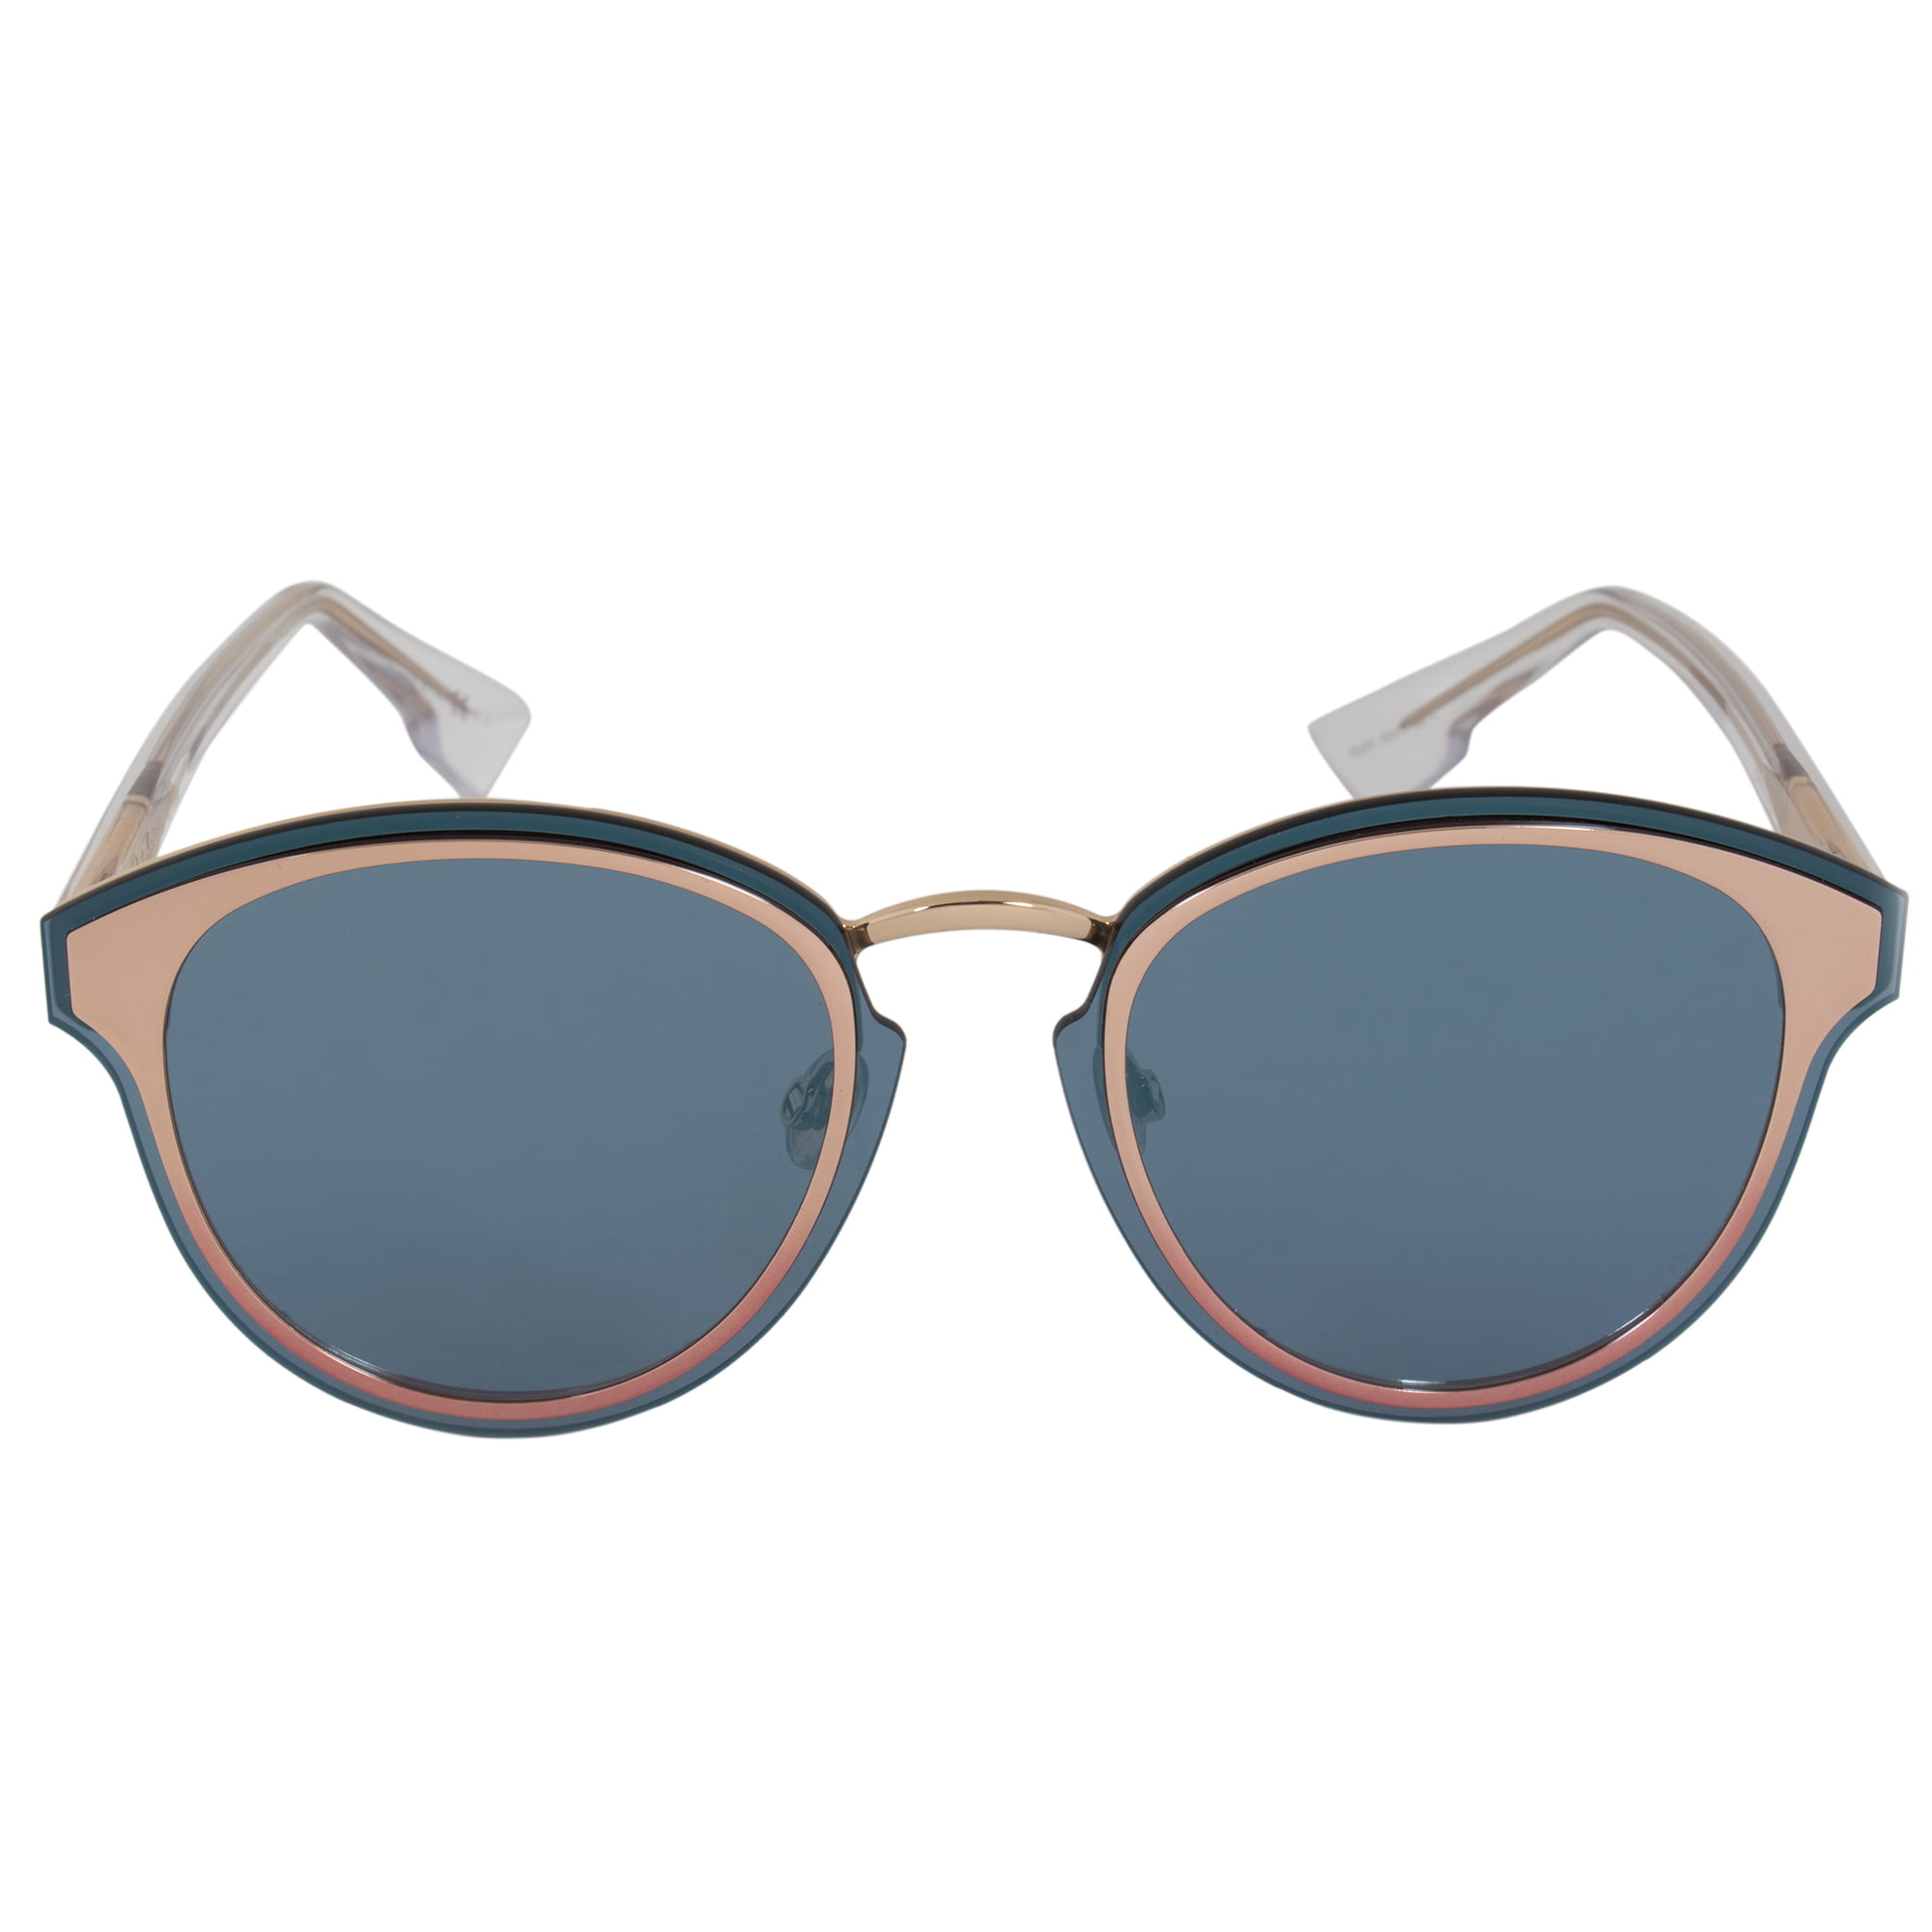 e0075e0ce Dior - Christian Dior Nightfall Sunglasses 35J2A 65 | Rose Gold Frame |  Blue Mirrored Lenses - Walmart.com